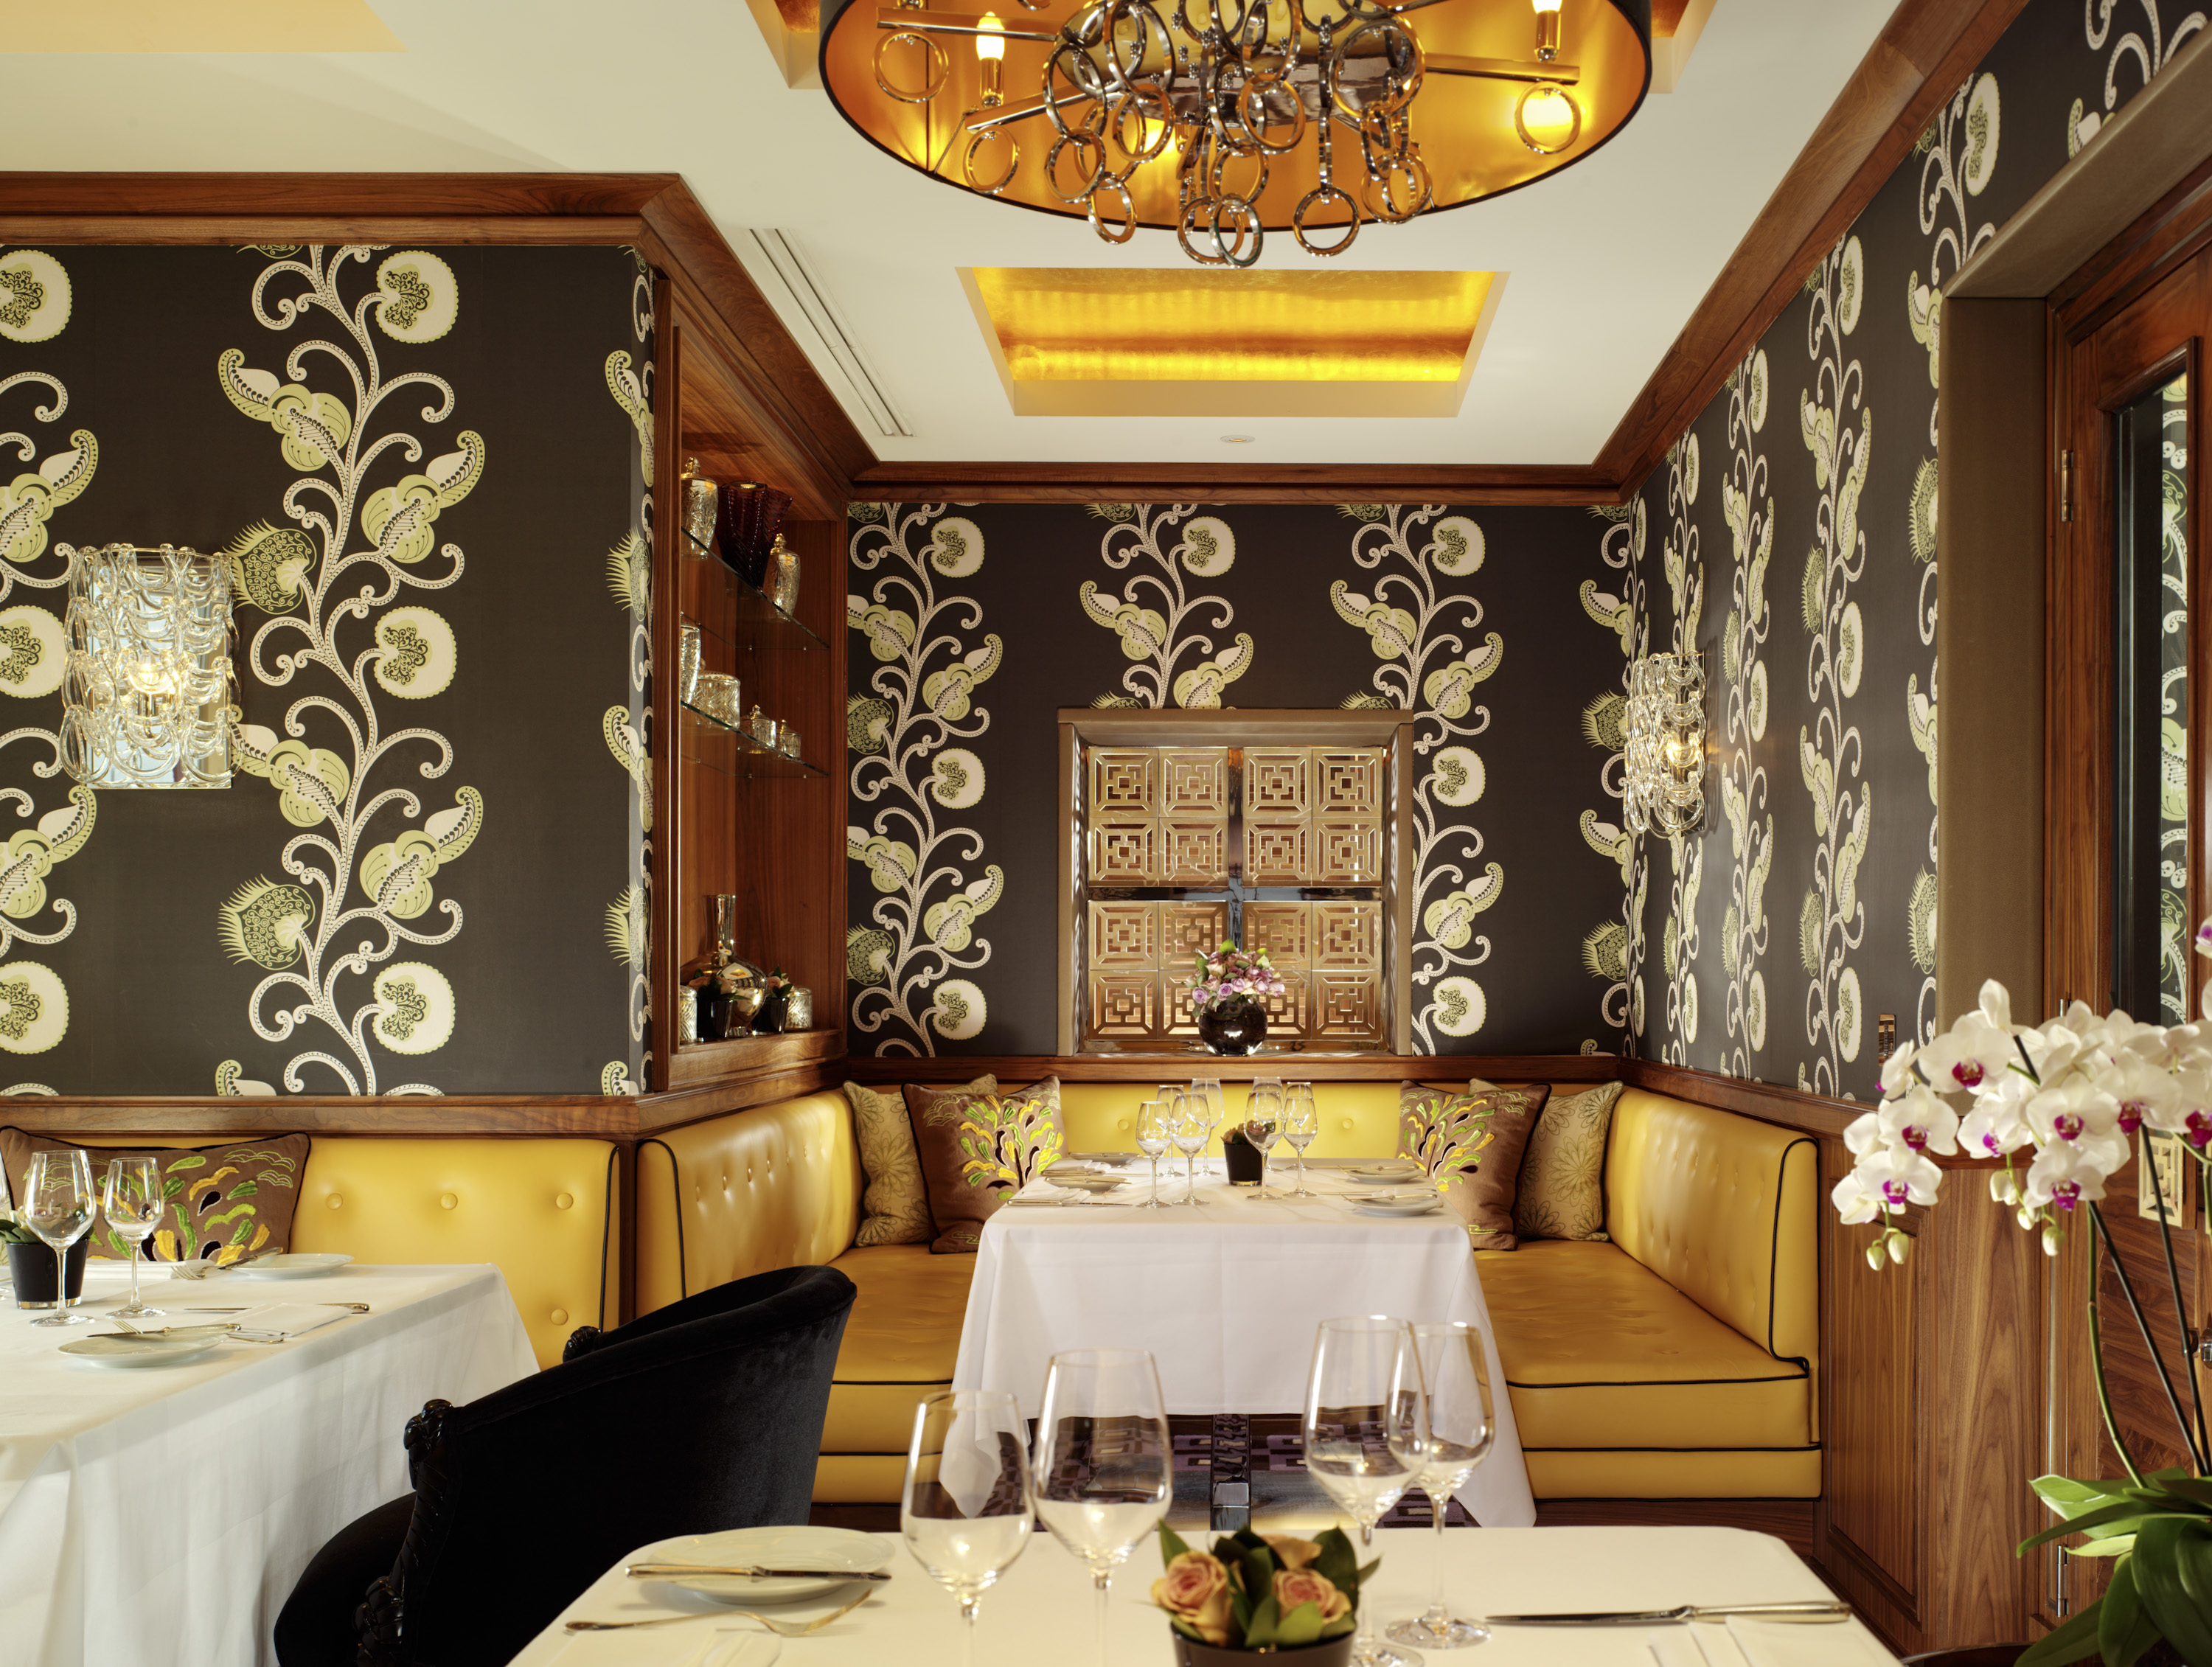 Kitchen east reviews stories recipes and more for Hotel michelin